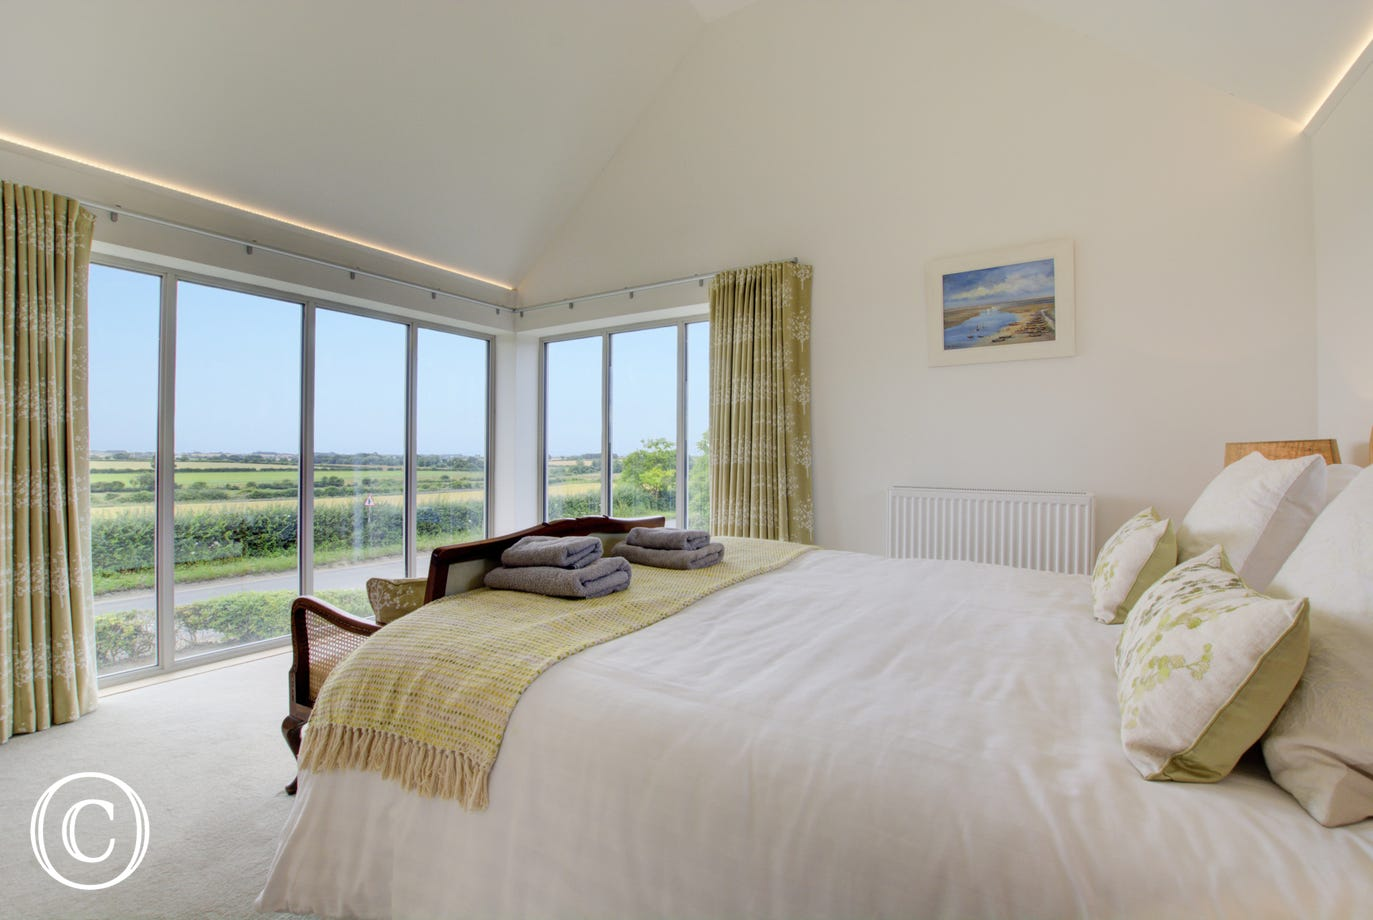 Stunning views from the main bedroom